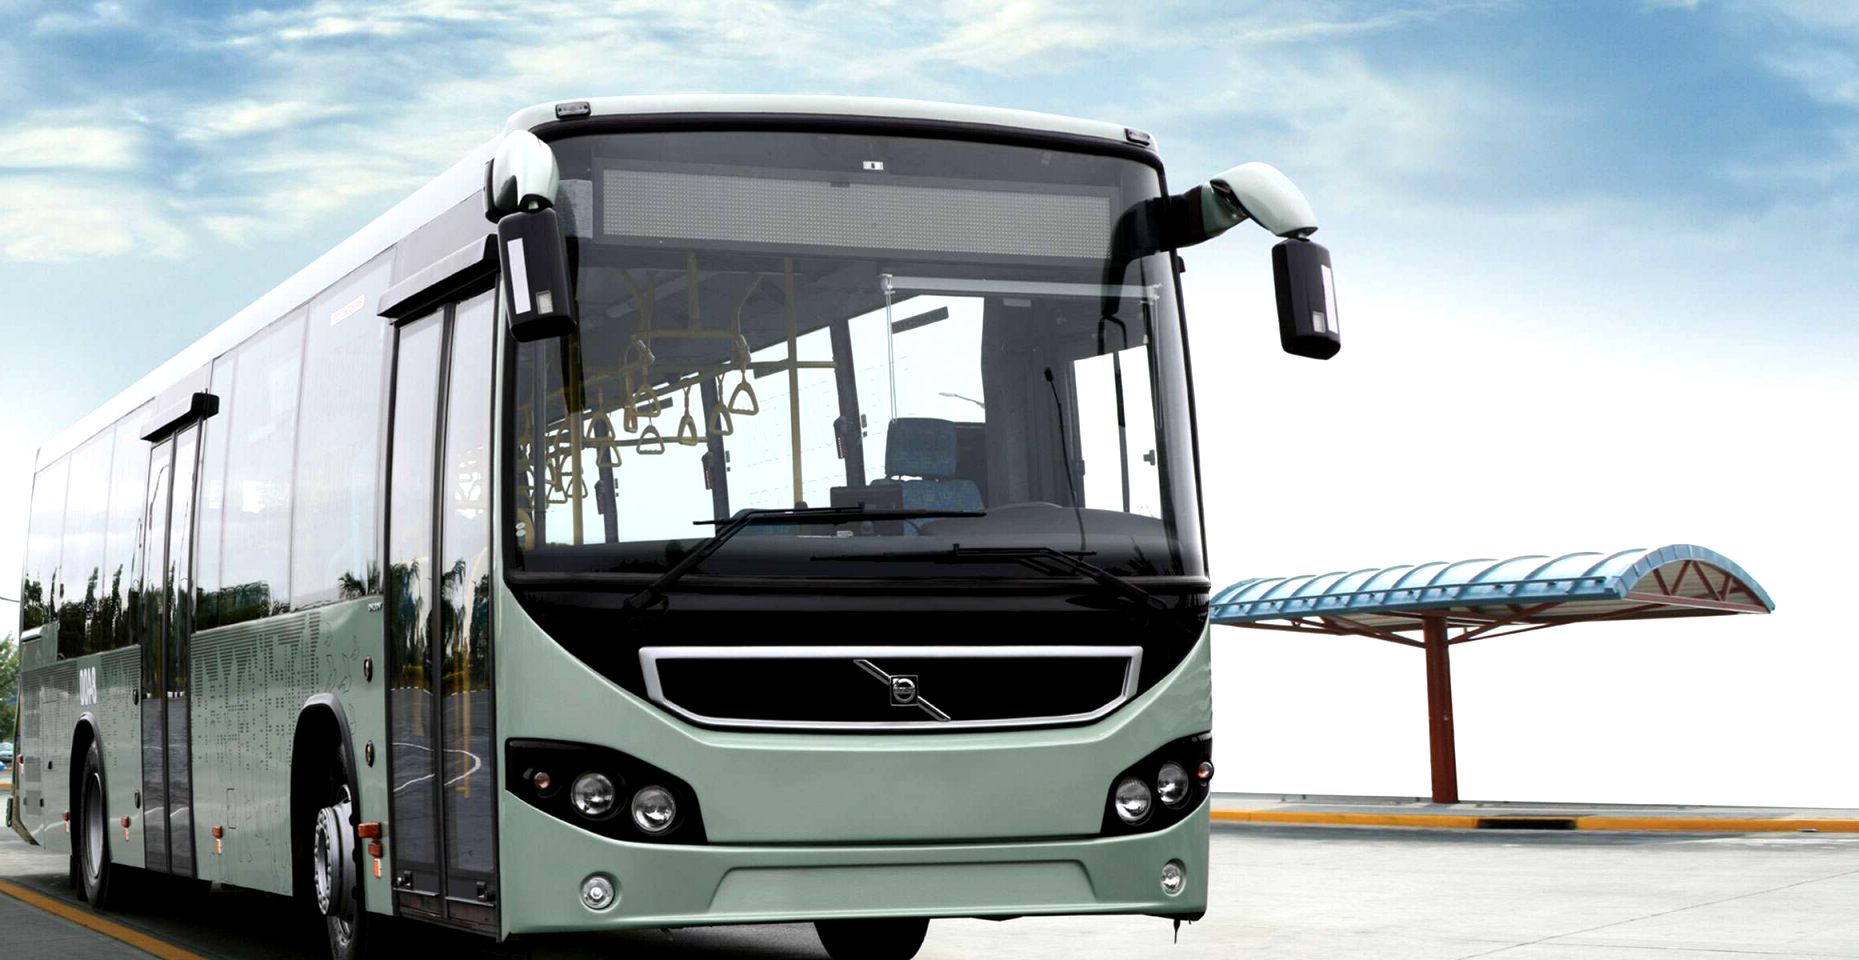 volvo bus price in india 2020 Performance and New Engine